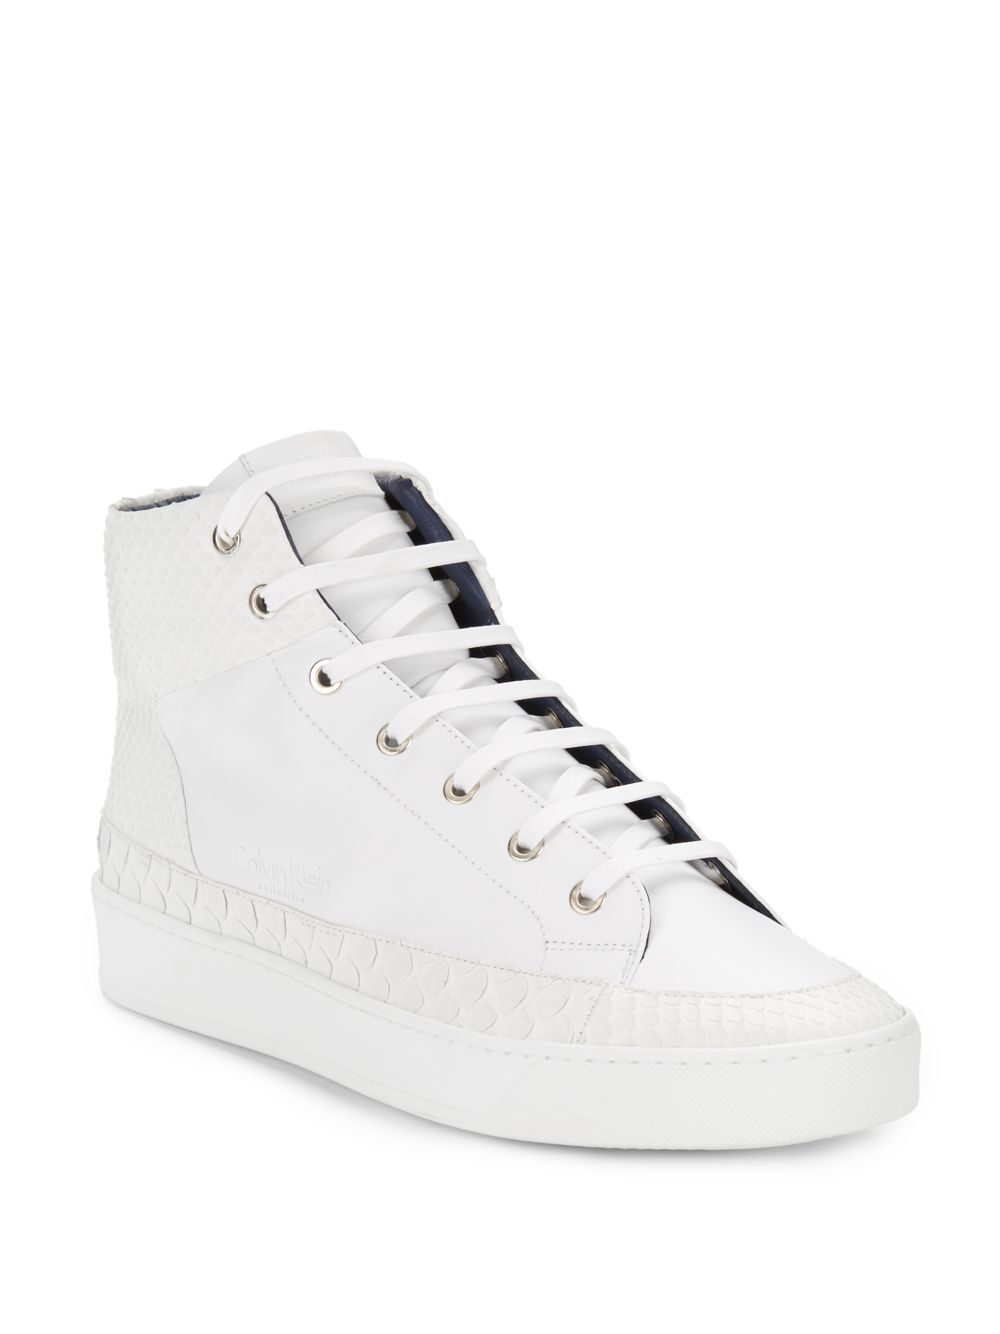 Calvin Klein Embossed Leather High-Top Sneakers In